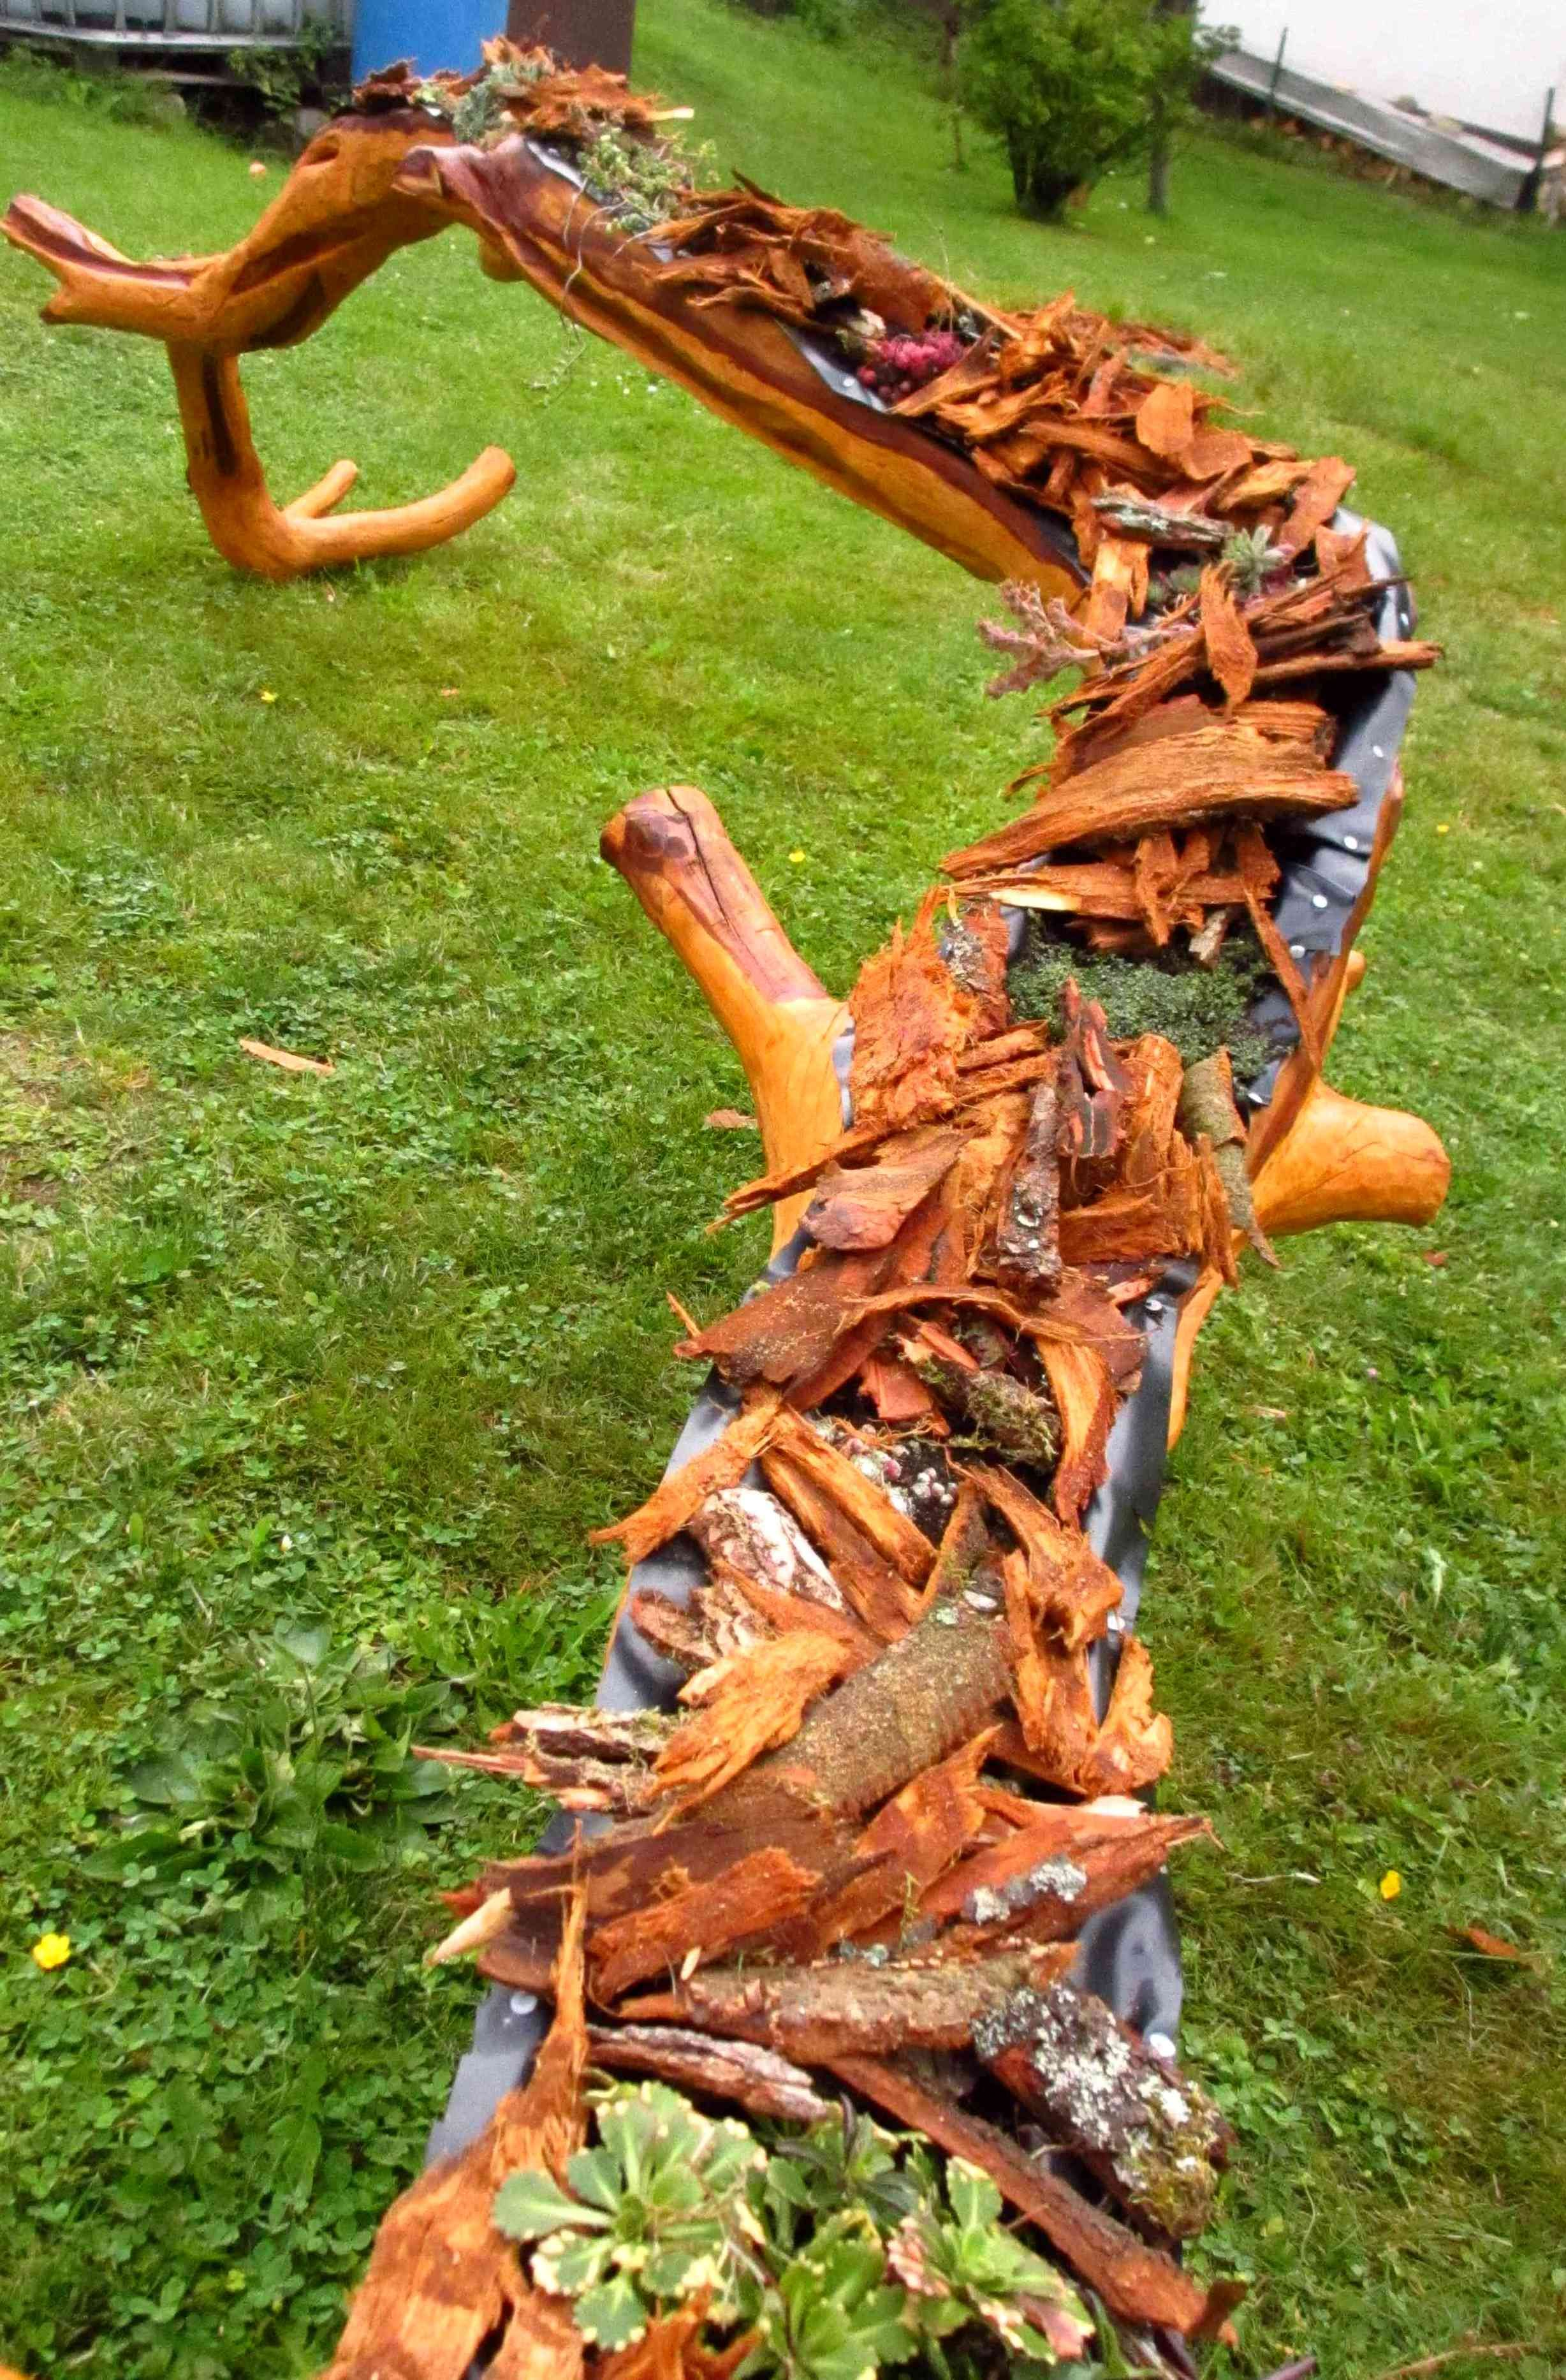 Chainsaw Woodcarving made by LARSCARVING. See you on my YouTube Channel. LARSCARVING